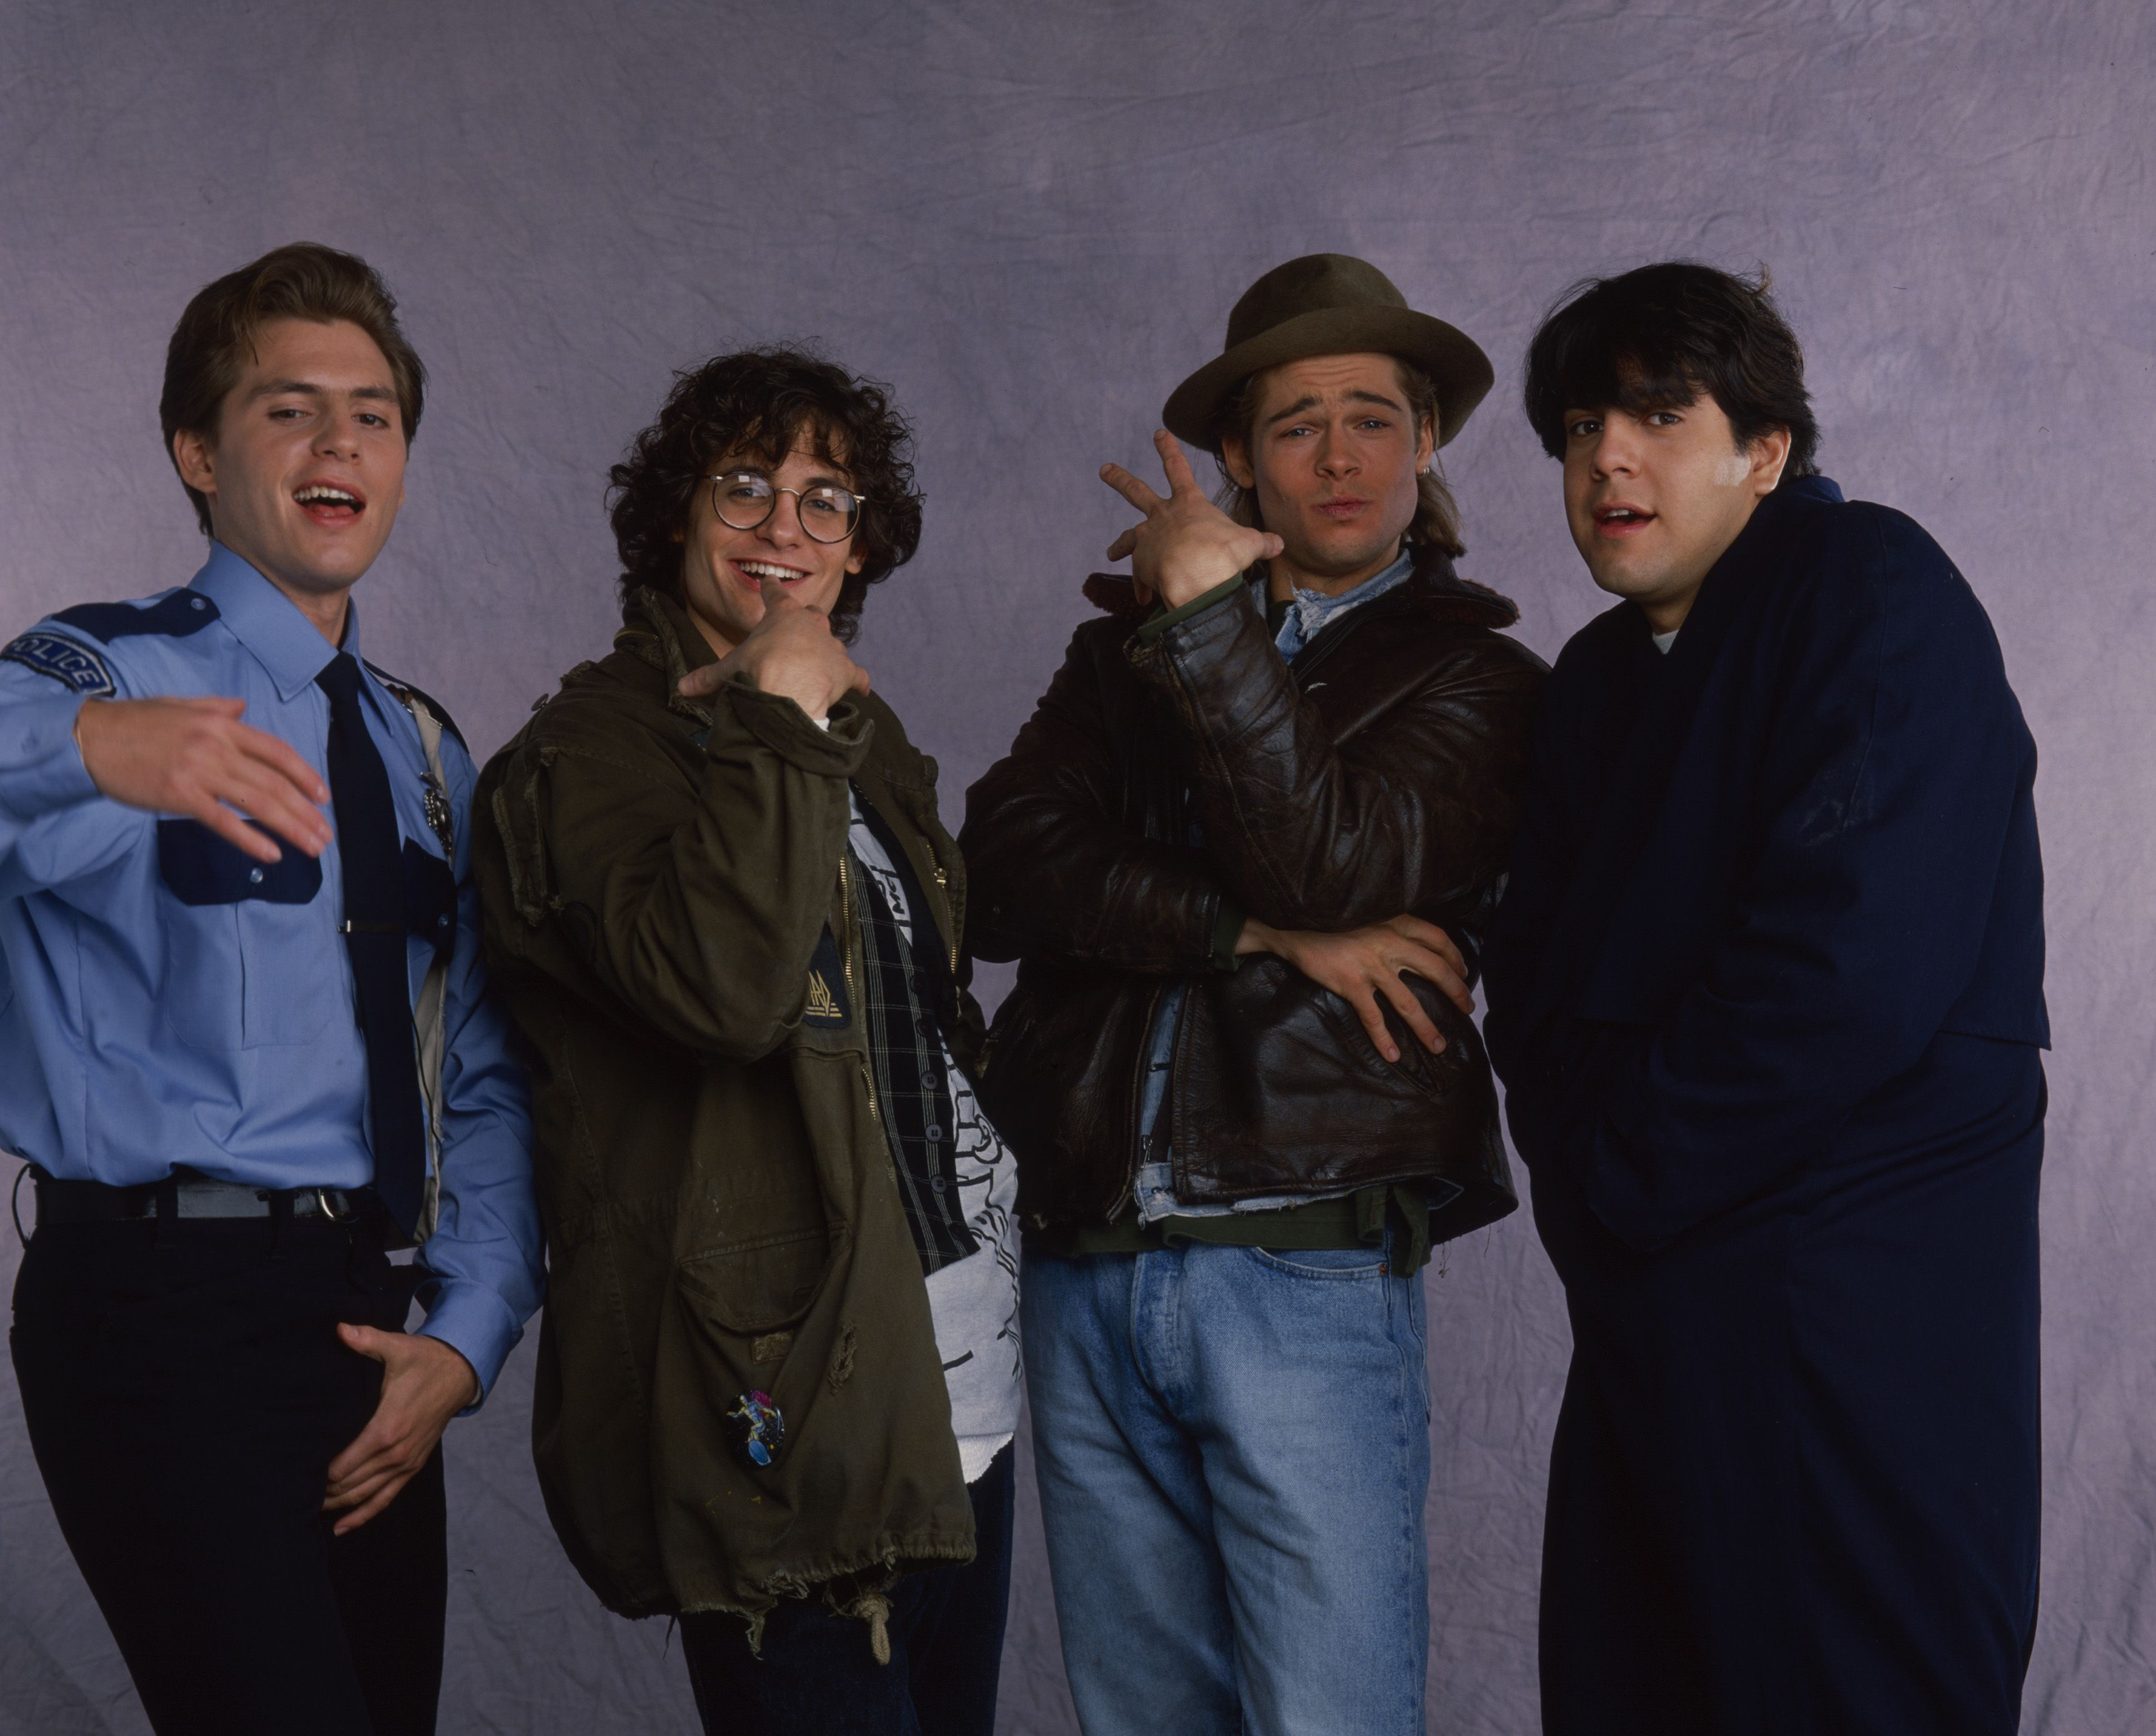 Spike Alexander, Claude Knobler, Brad Pitt, Evan Mirand Promotional Photo For 'The Kids Are All Right'